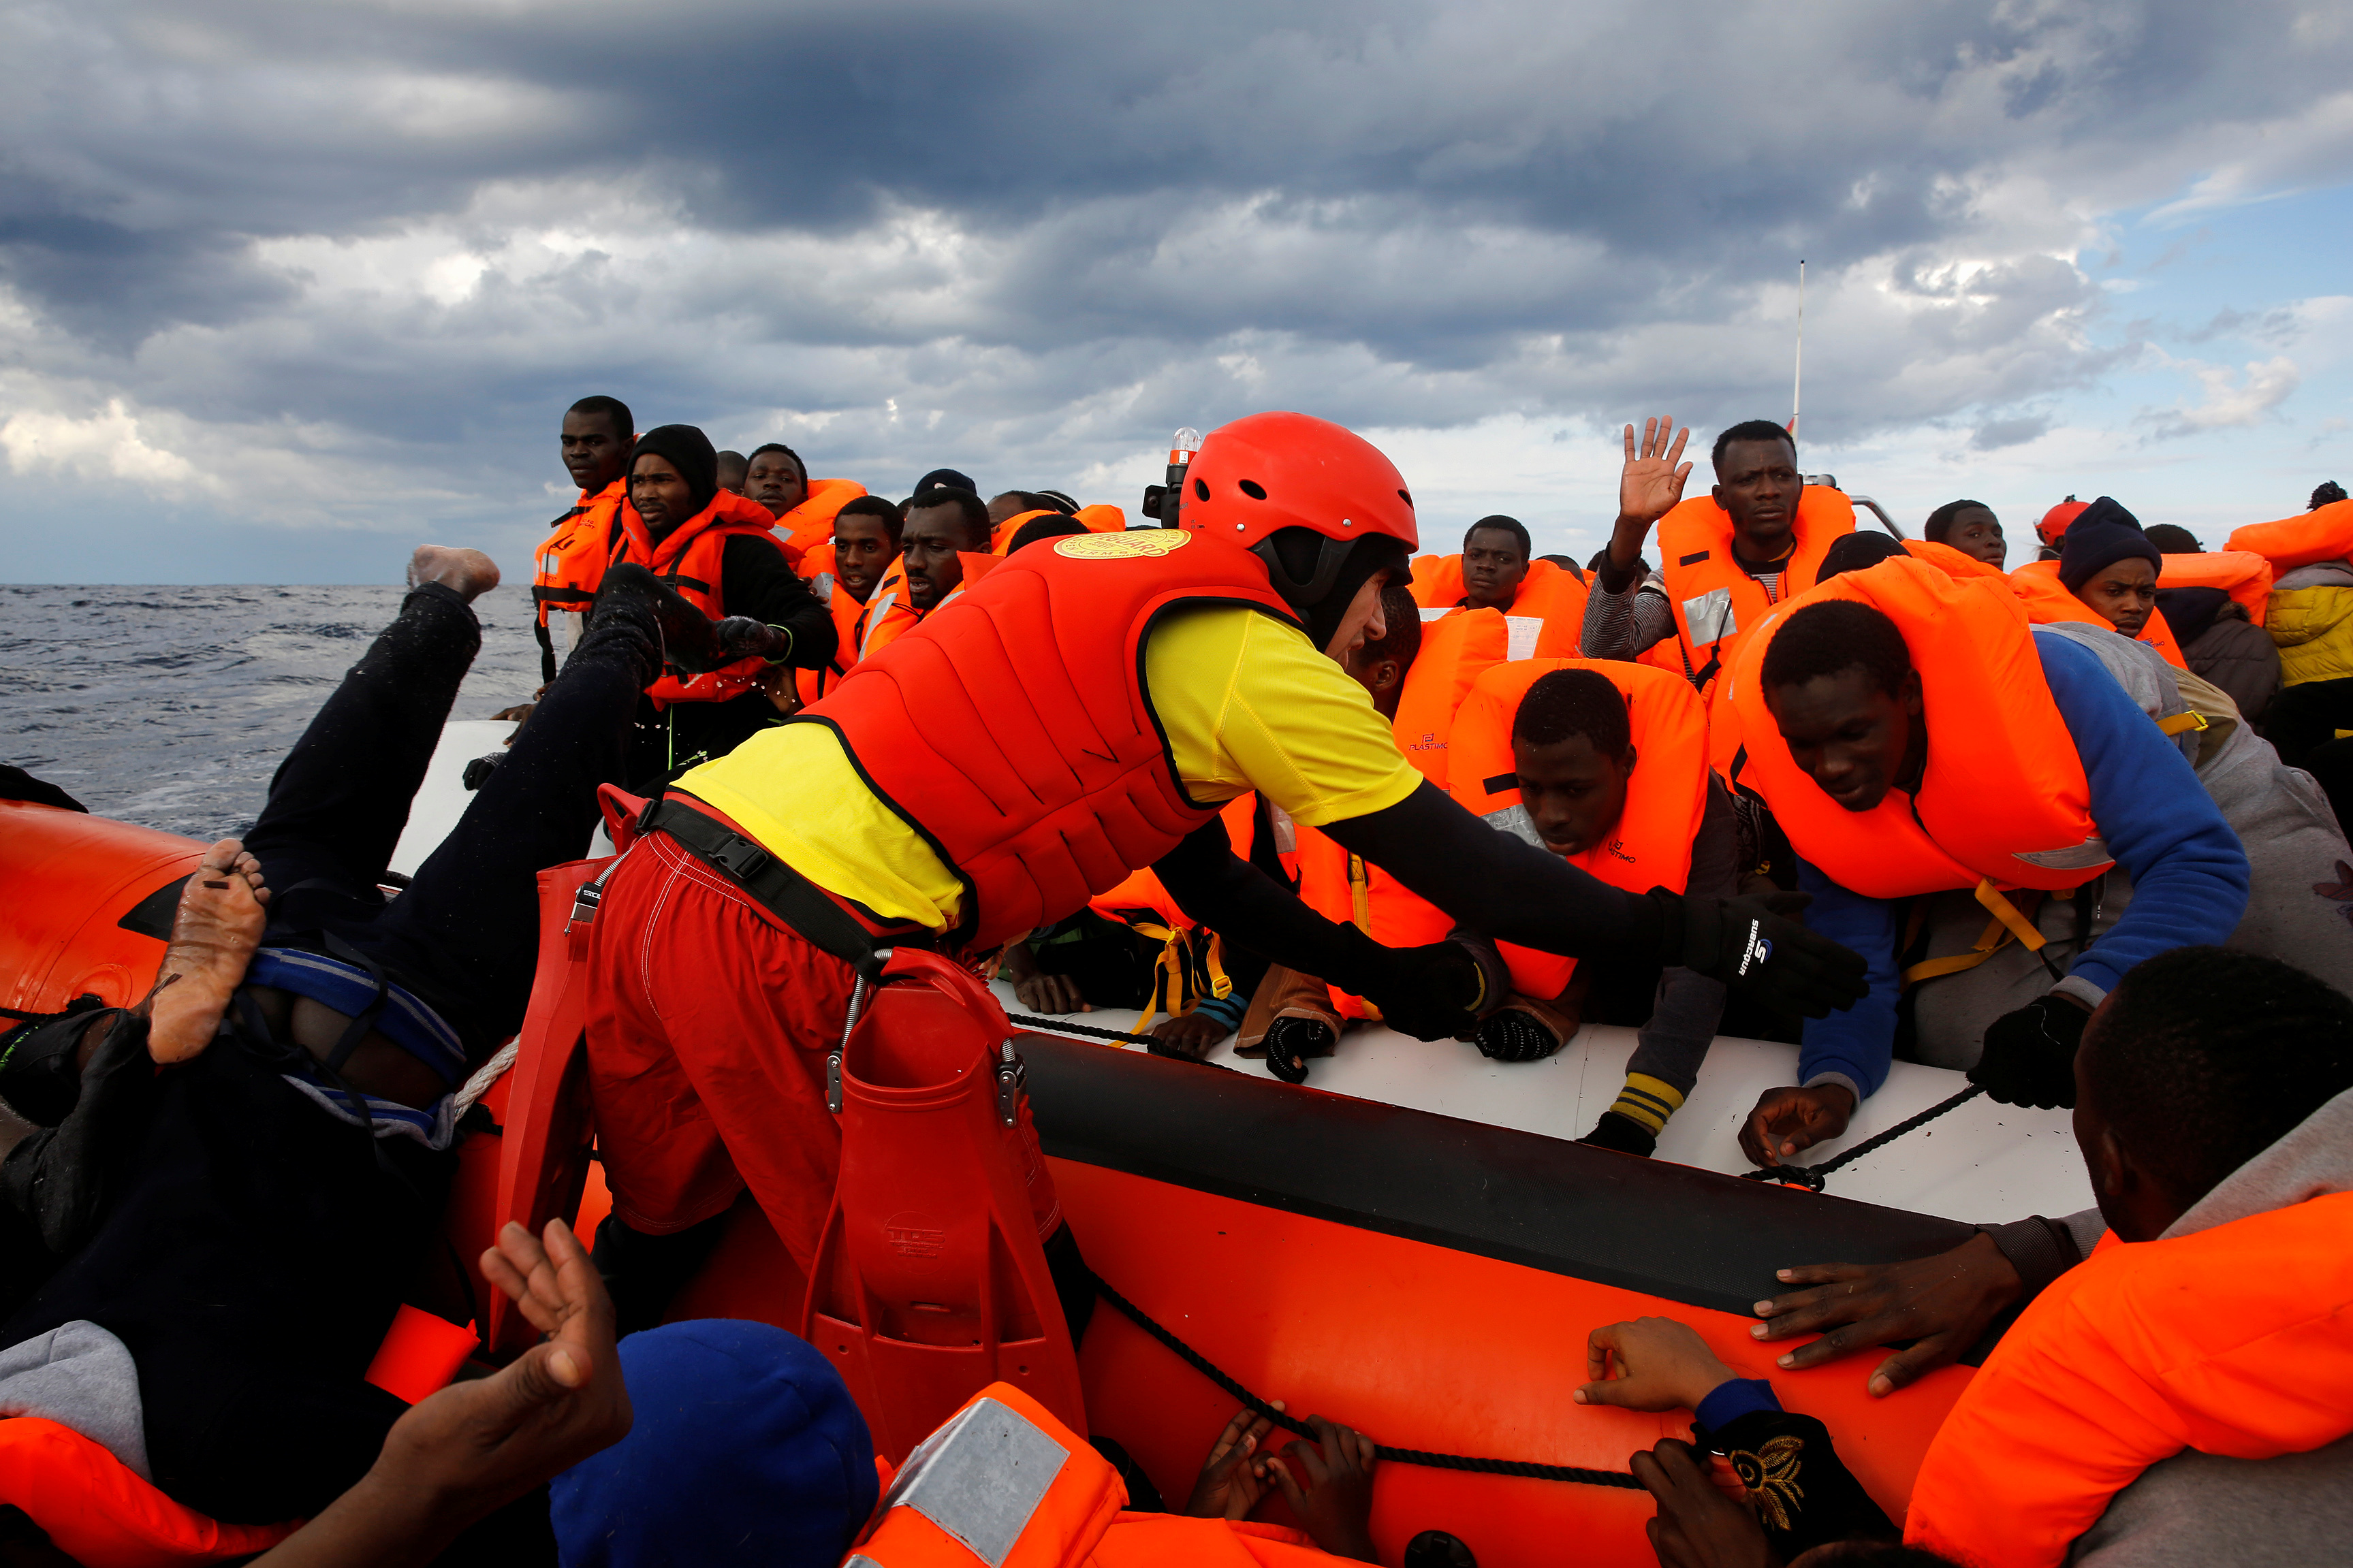 Once given life vests, the migrants are helped aboard a rescue craft that will take them to a larger boat. Photo by Yannis Behrakis/Reuters